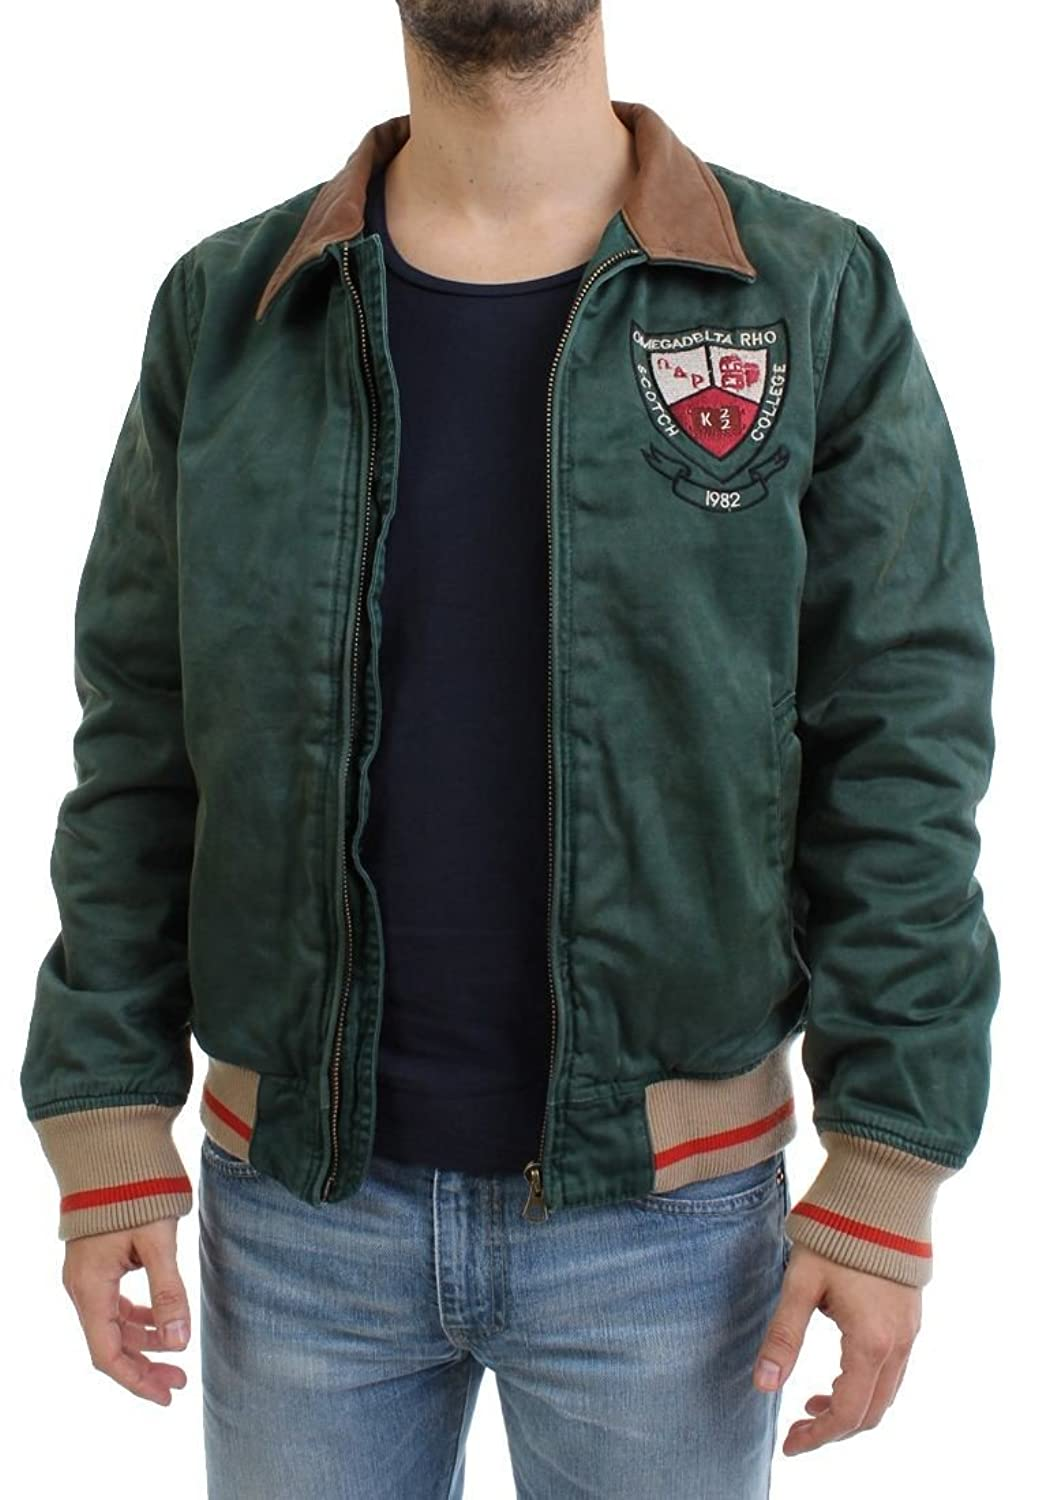 Scotch & Soda Jacke Men - 1304-07.10028 - Grass Green #71